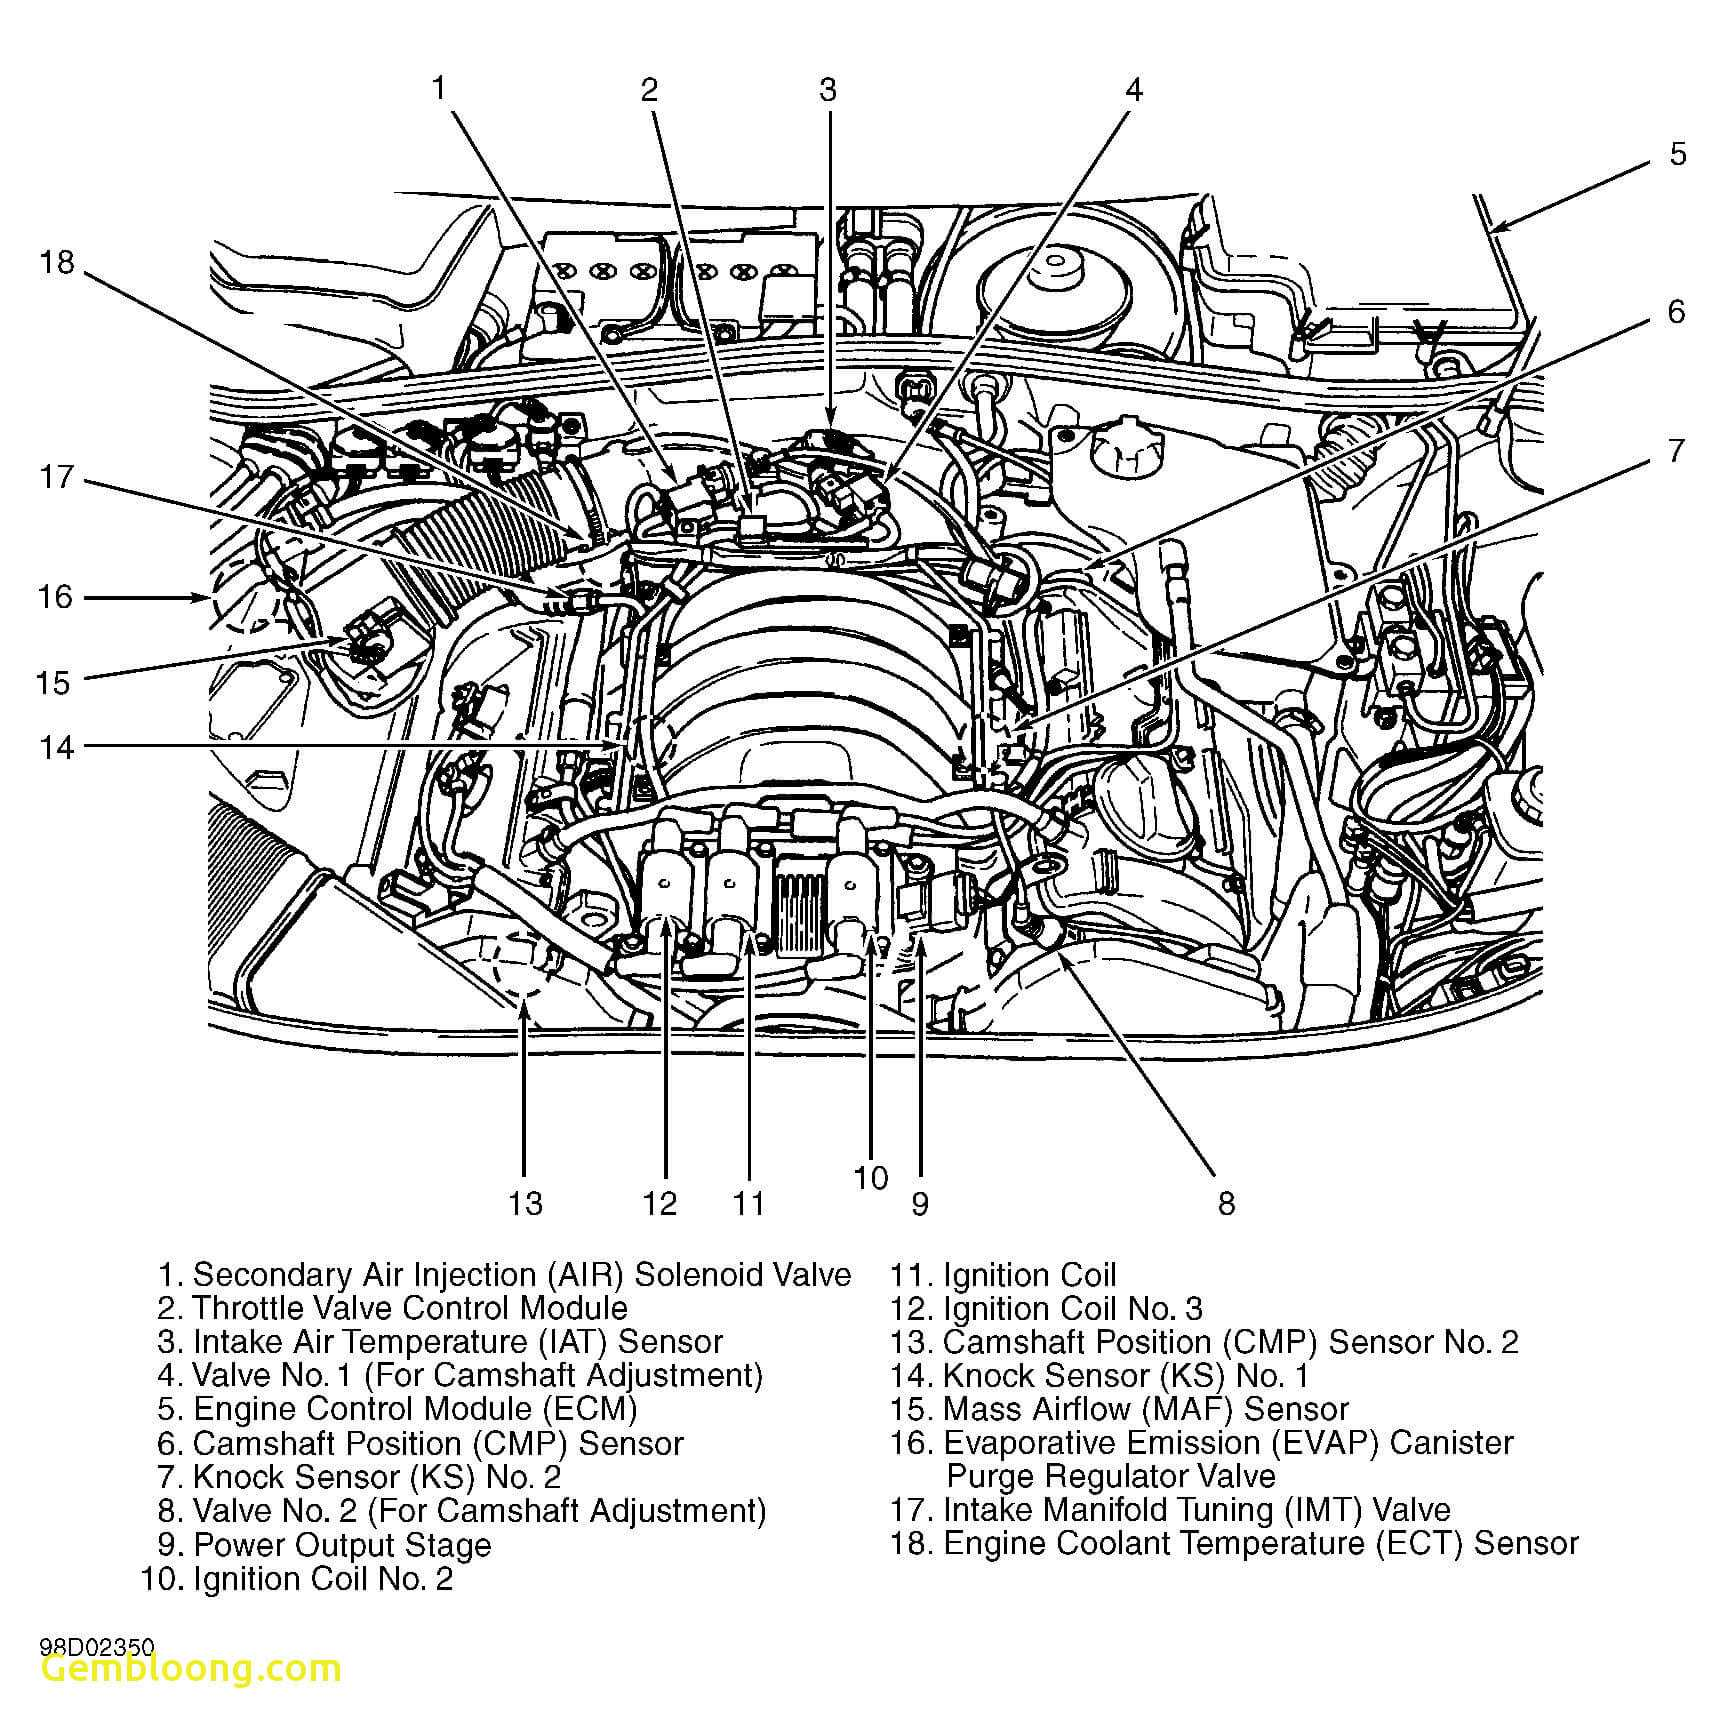 Here S Among The Best Free Car Engine Diagrams You Can